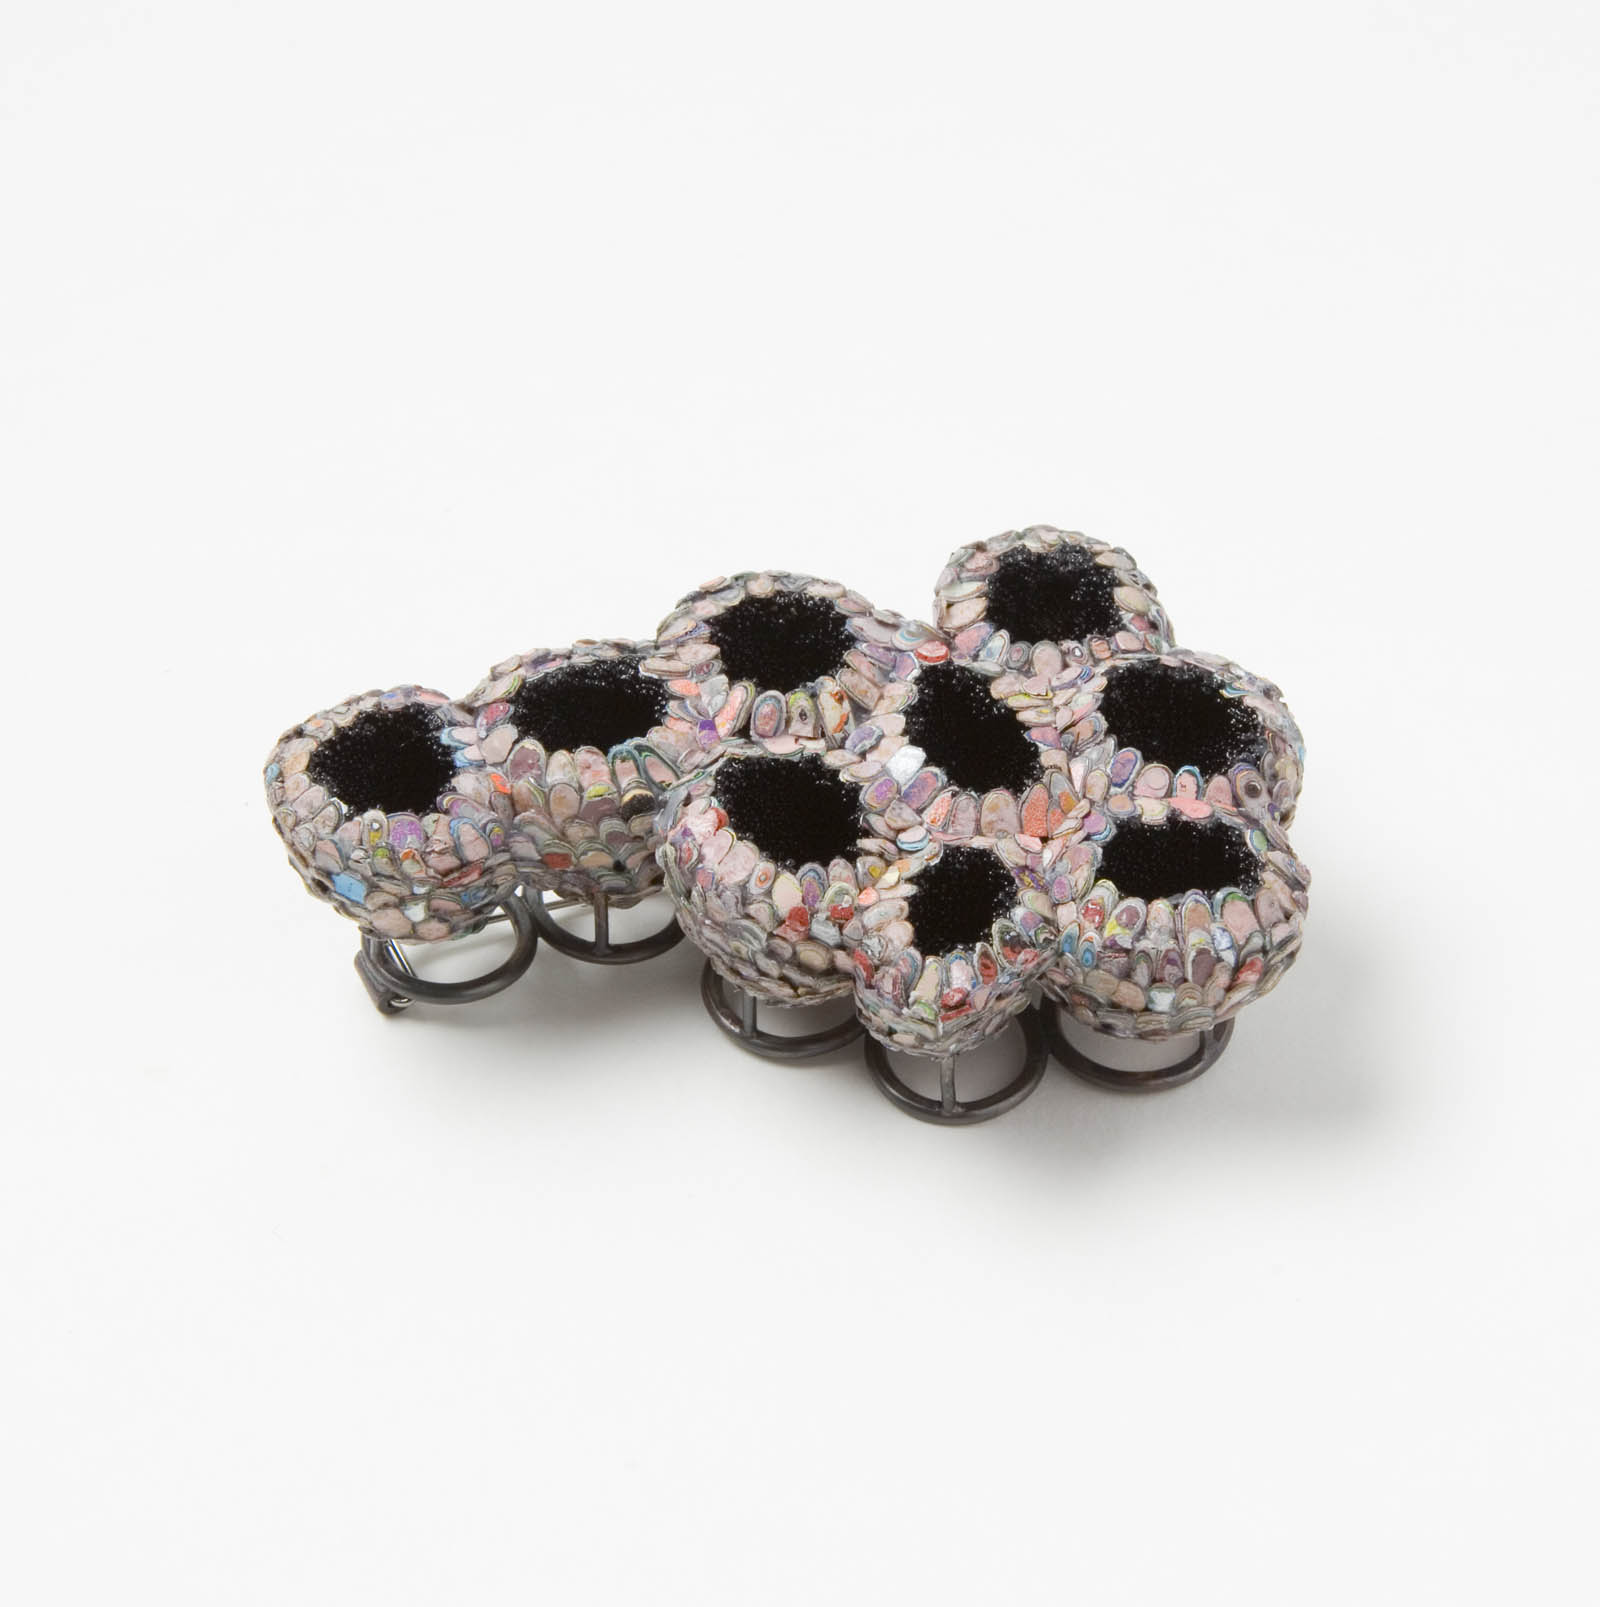 """""""The Secret Keepers (Pink)"""" I Brooch, 2016 I Seed pods, graffiti, glass, silver, stainless steel I Photo: Mirei Takeuchi"""